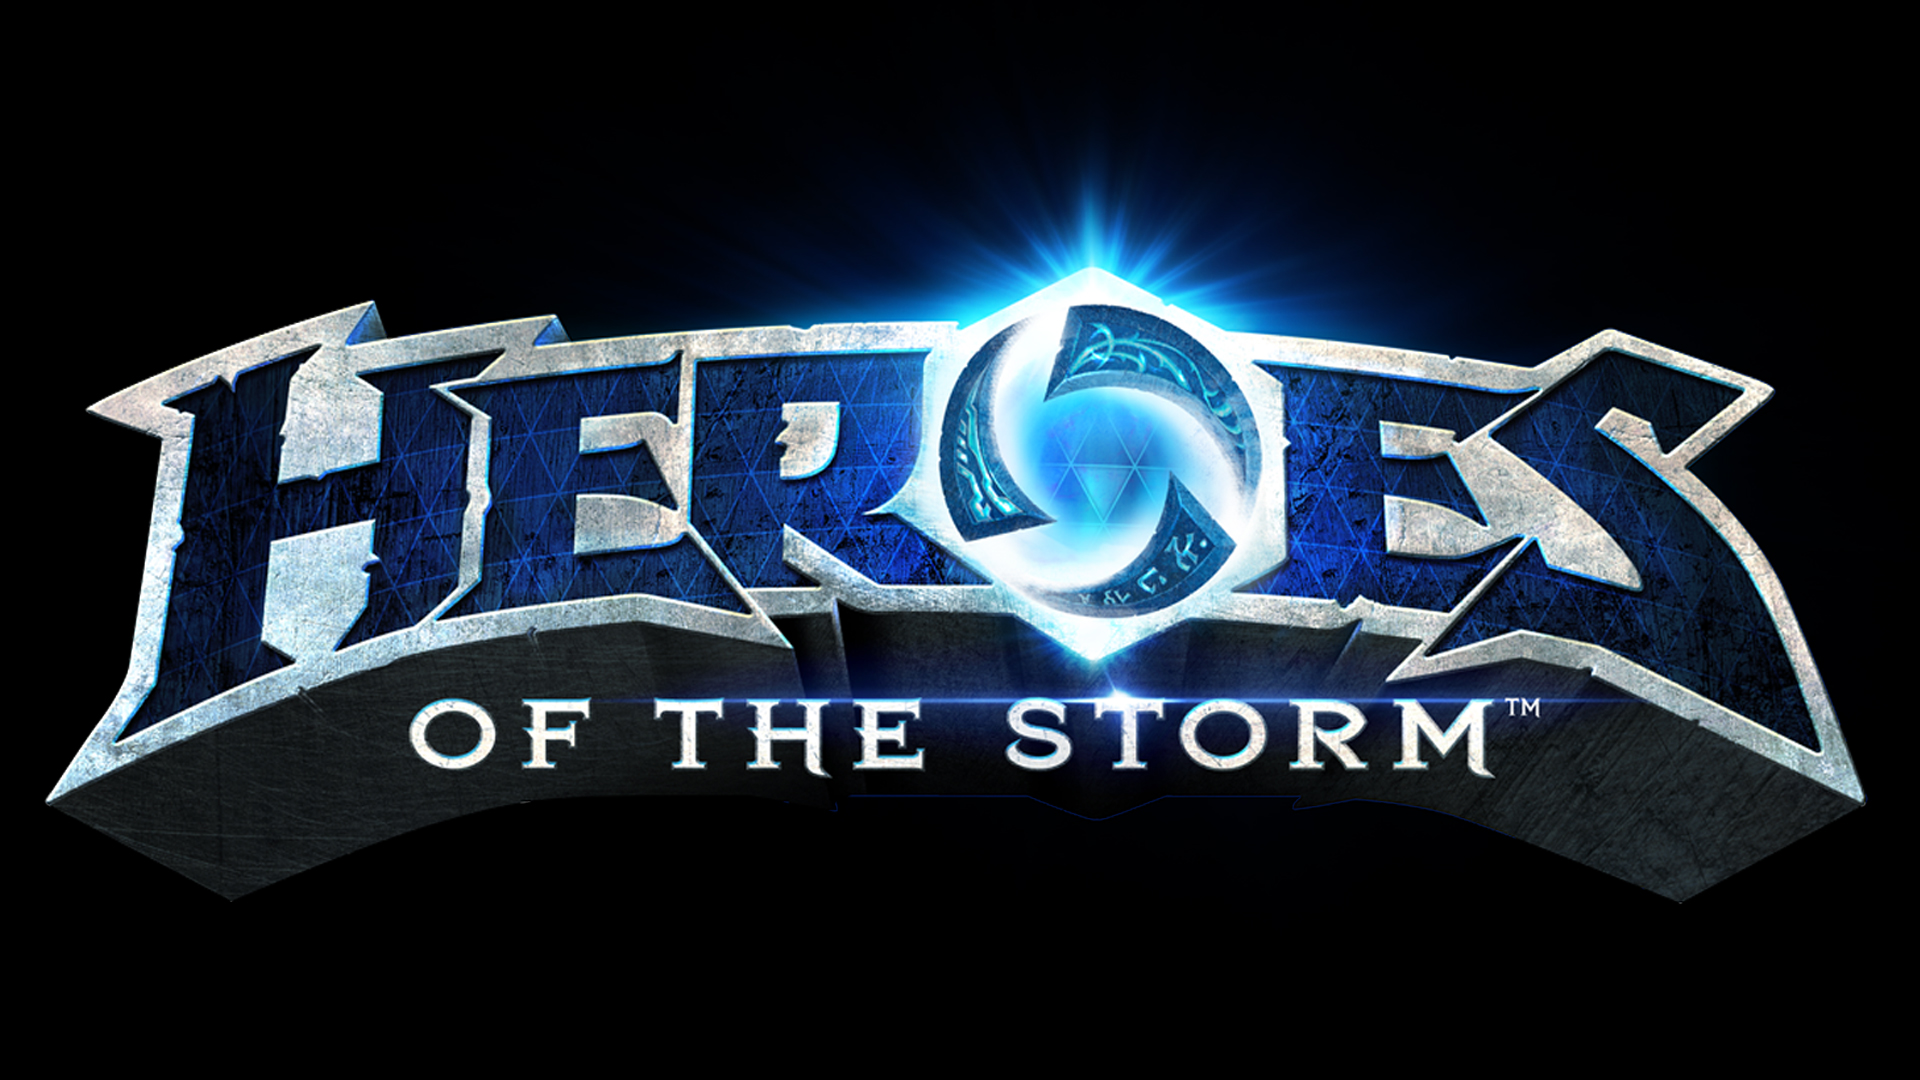 Heroes of the Storm: A Team Brawler of Heroic Proportions